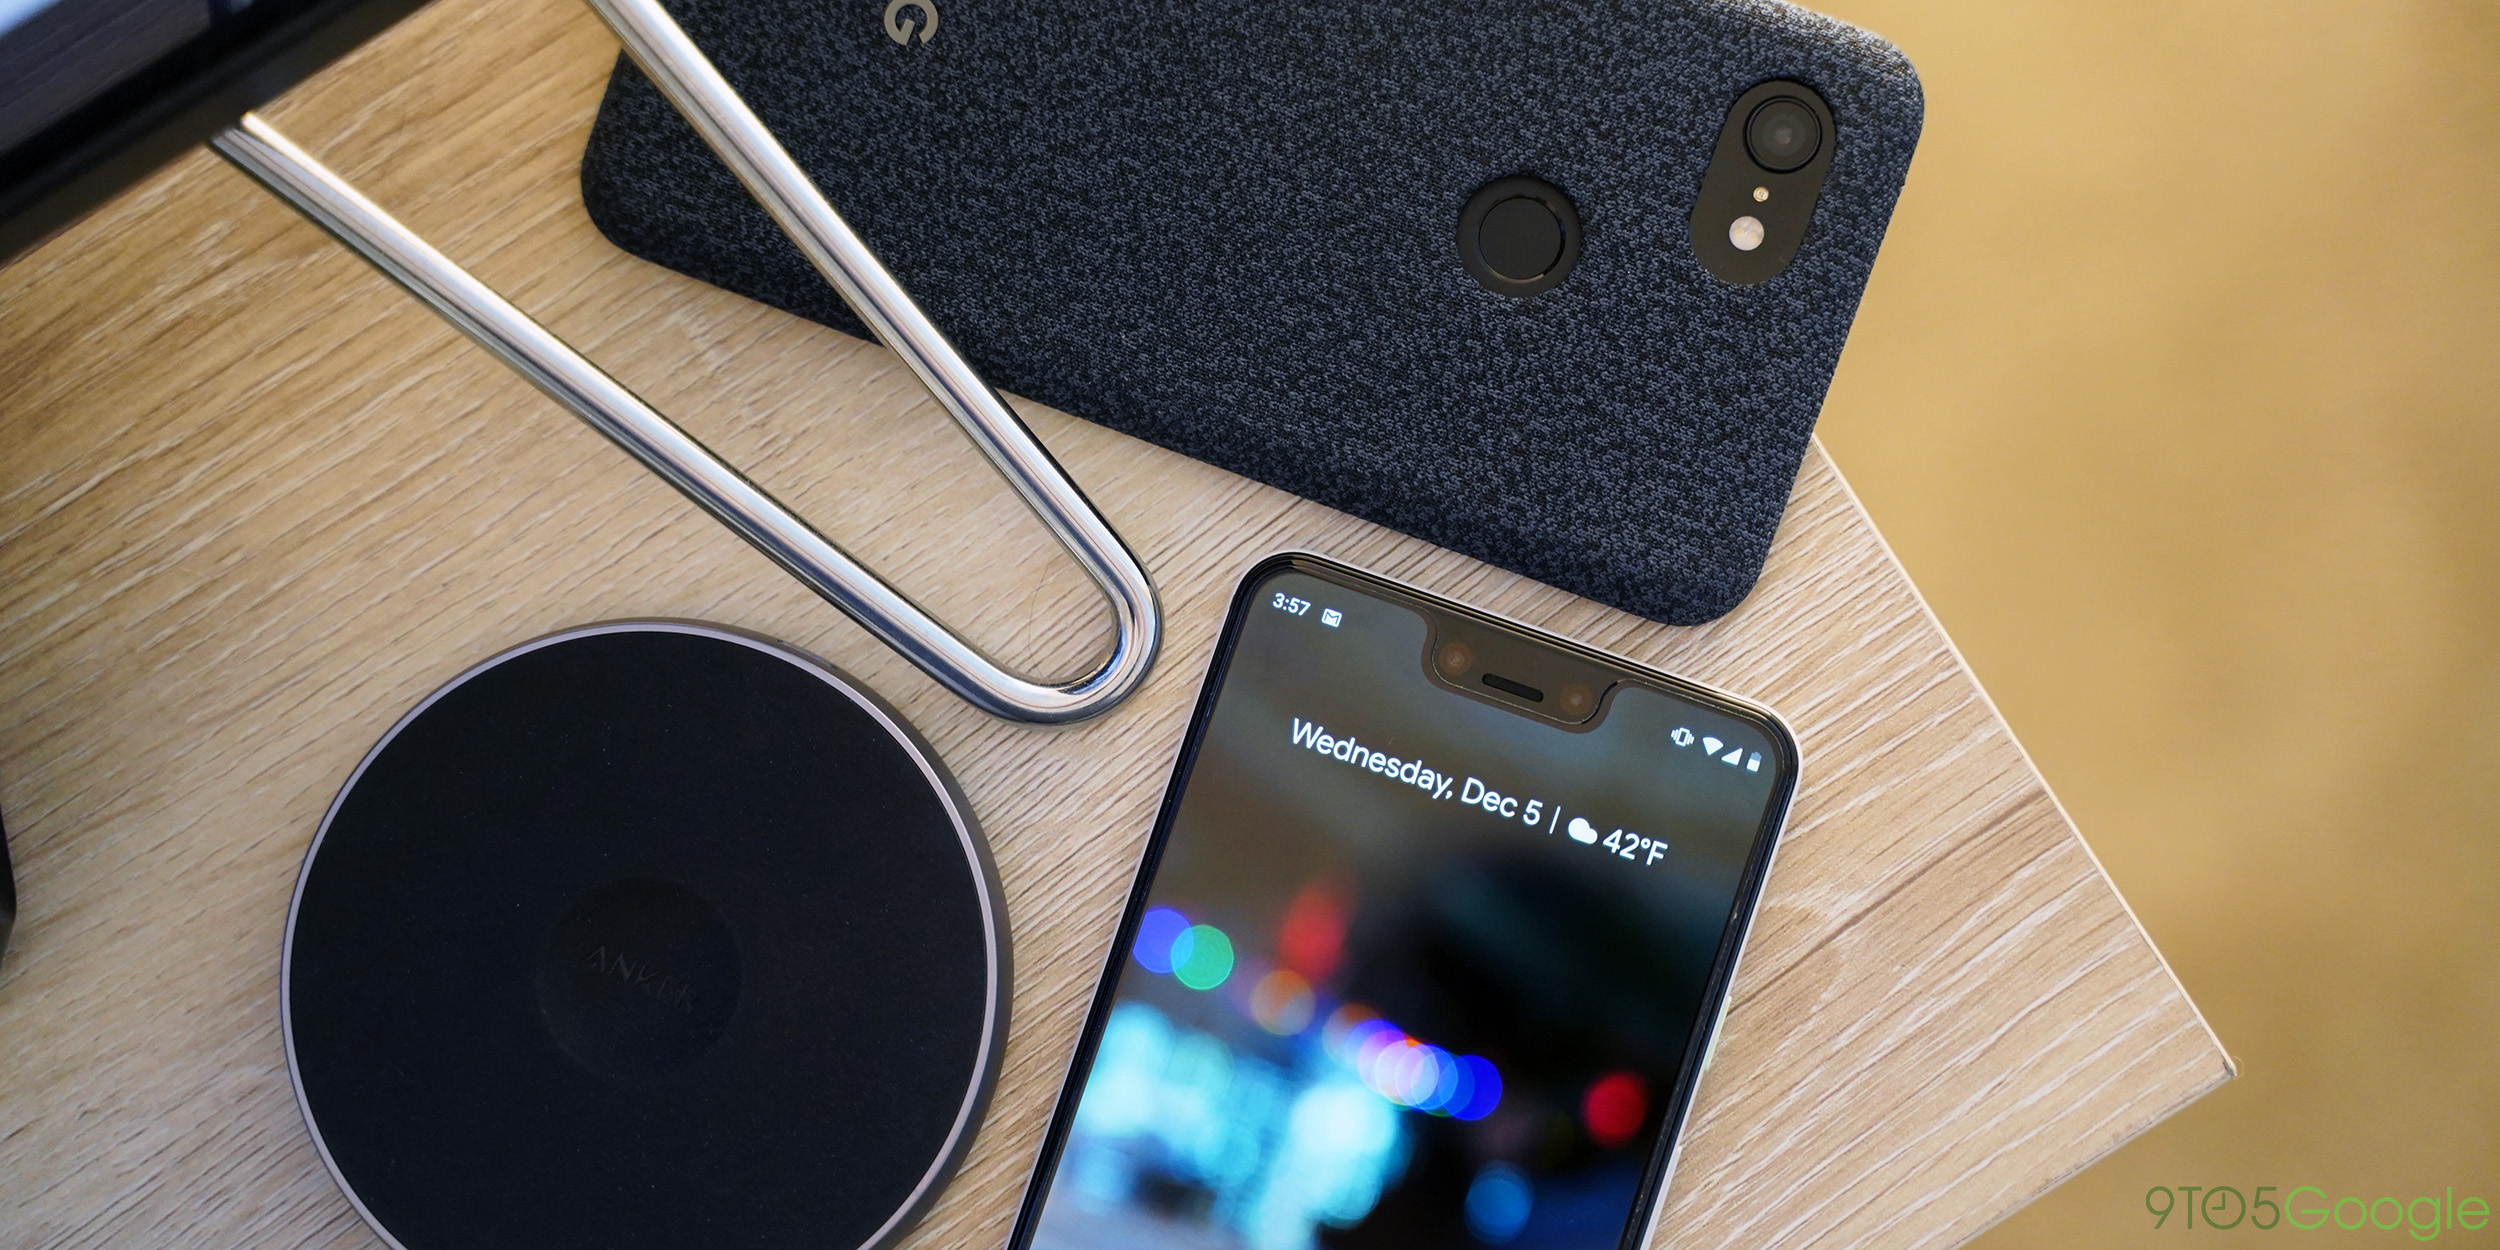 Google Store and Google Fi discount Pixel 3, Pixel 3 XL by $150 off - 9to5Google